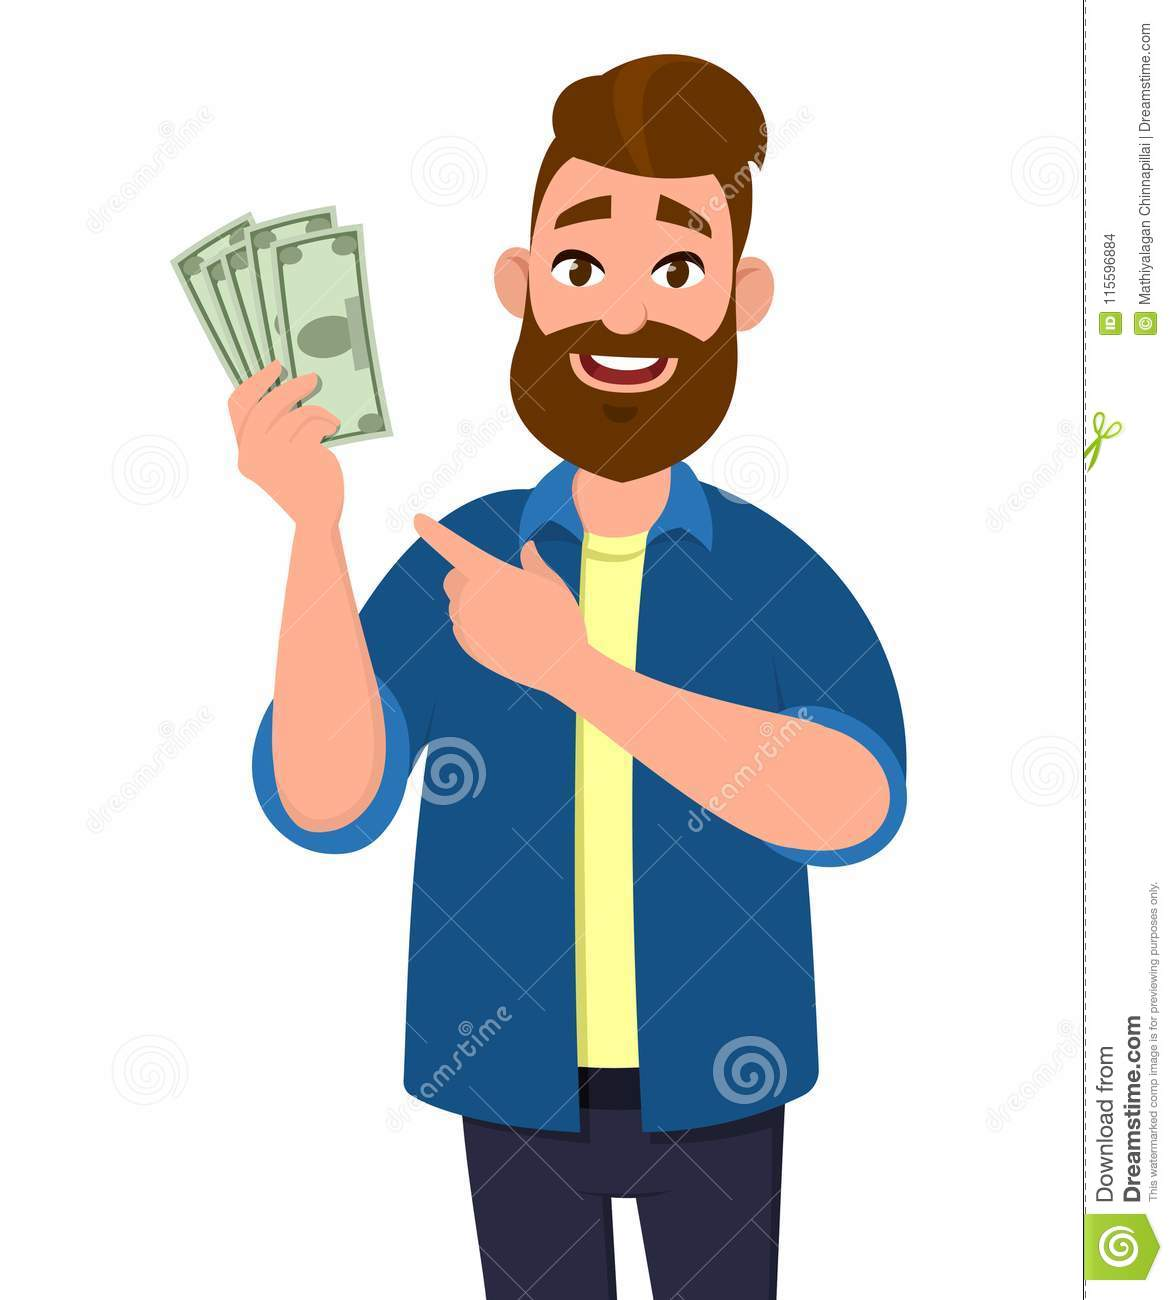 Man holding cash/money/currency notes in hand and pointing. Business and finance concept illustration.